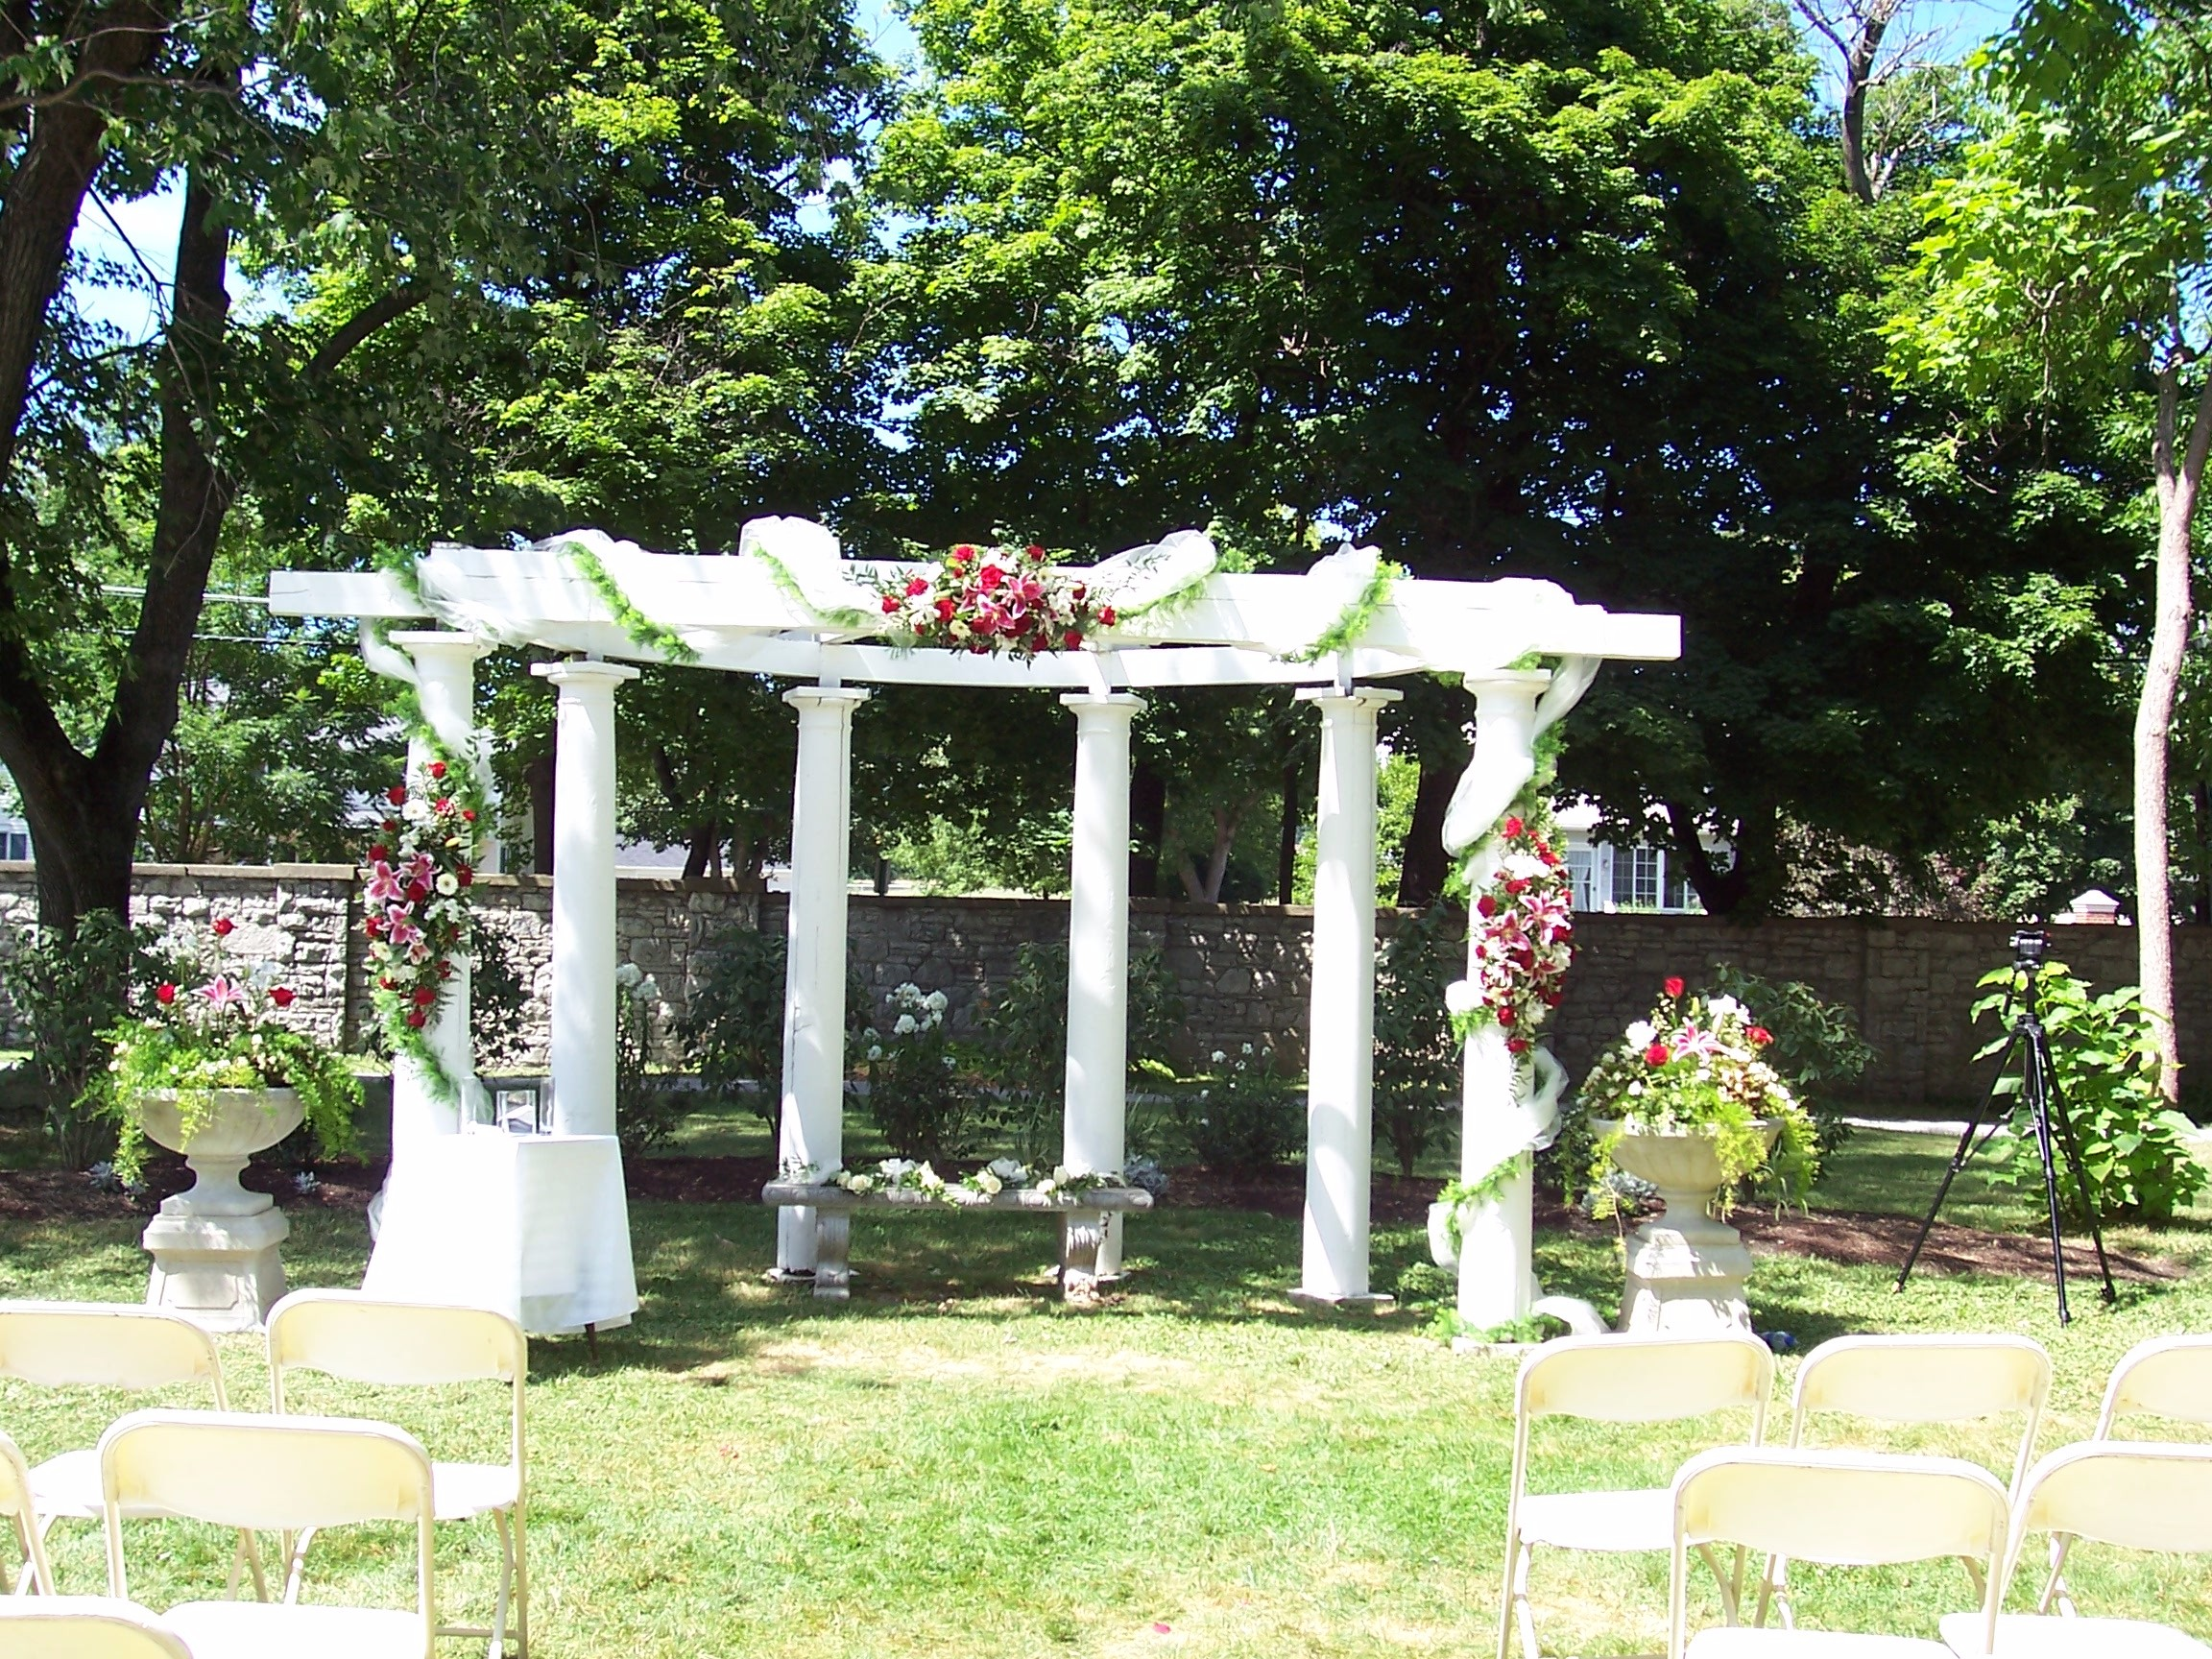 decorated-wedding-pergola_6685015441_o